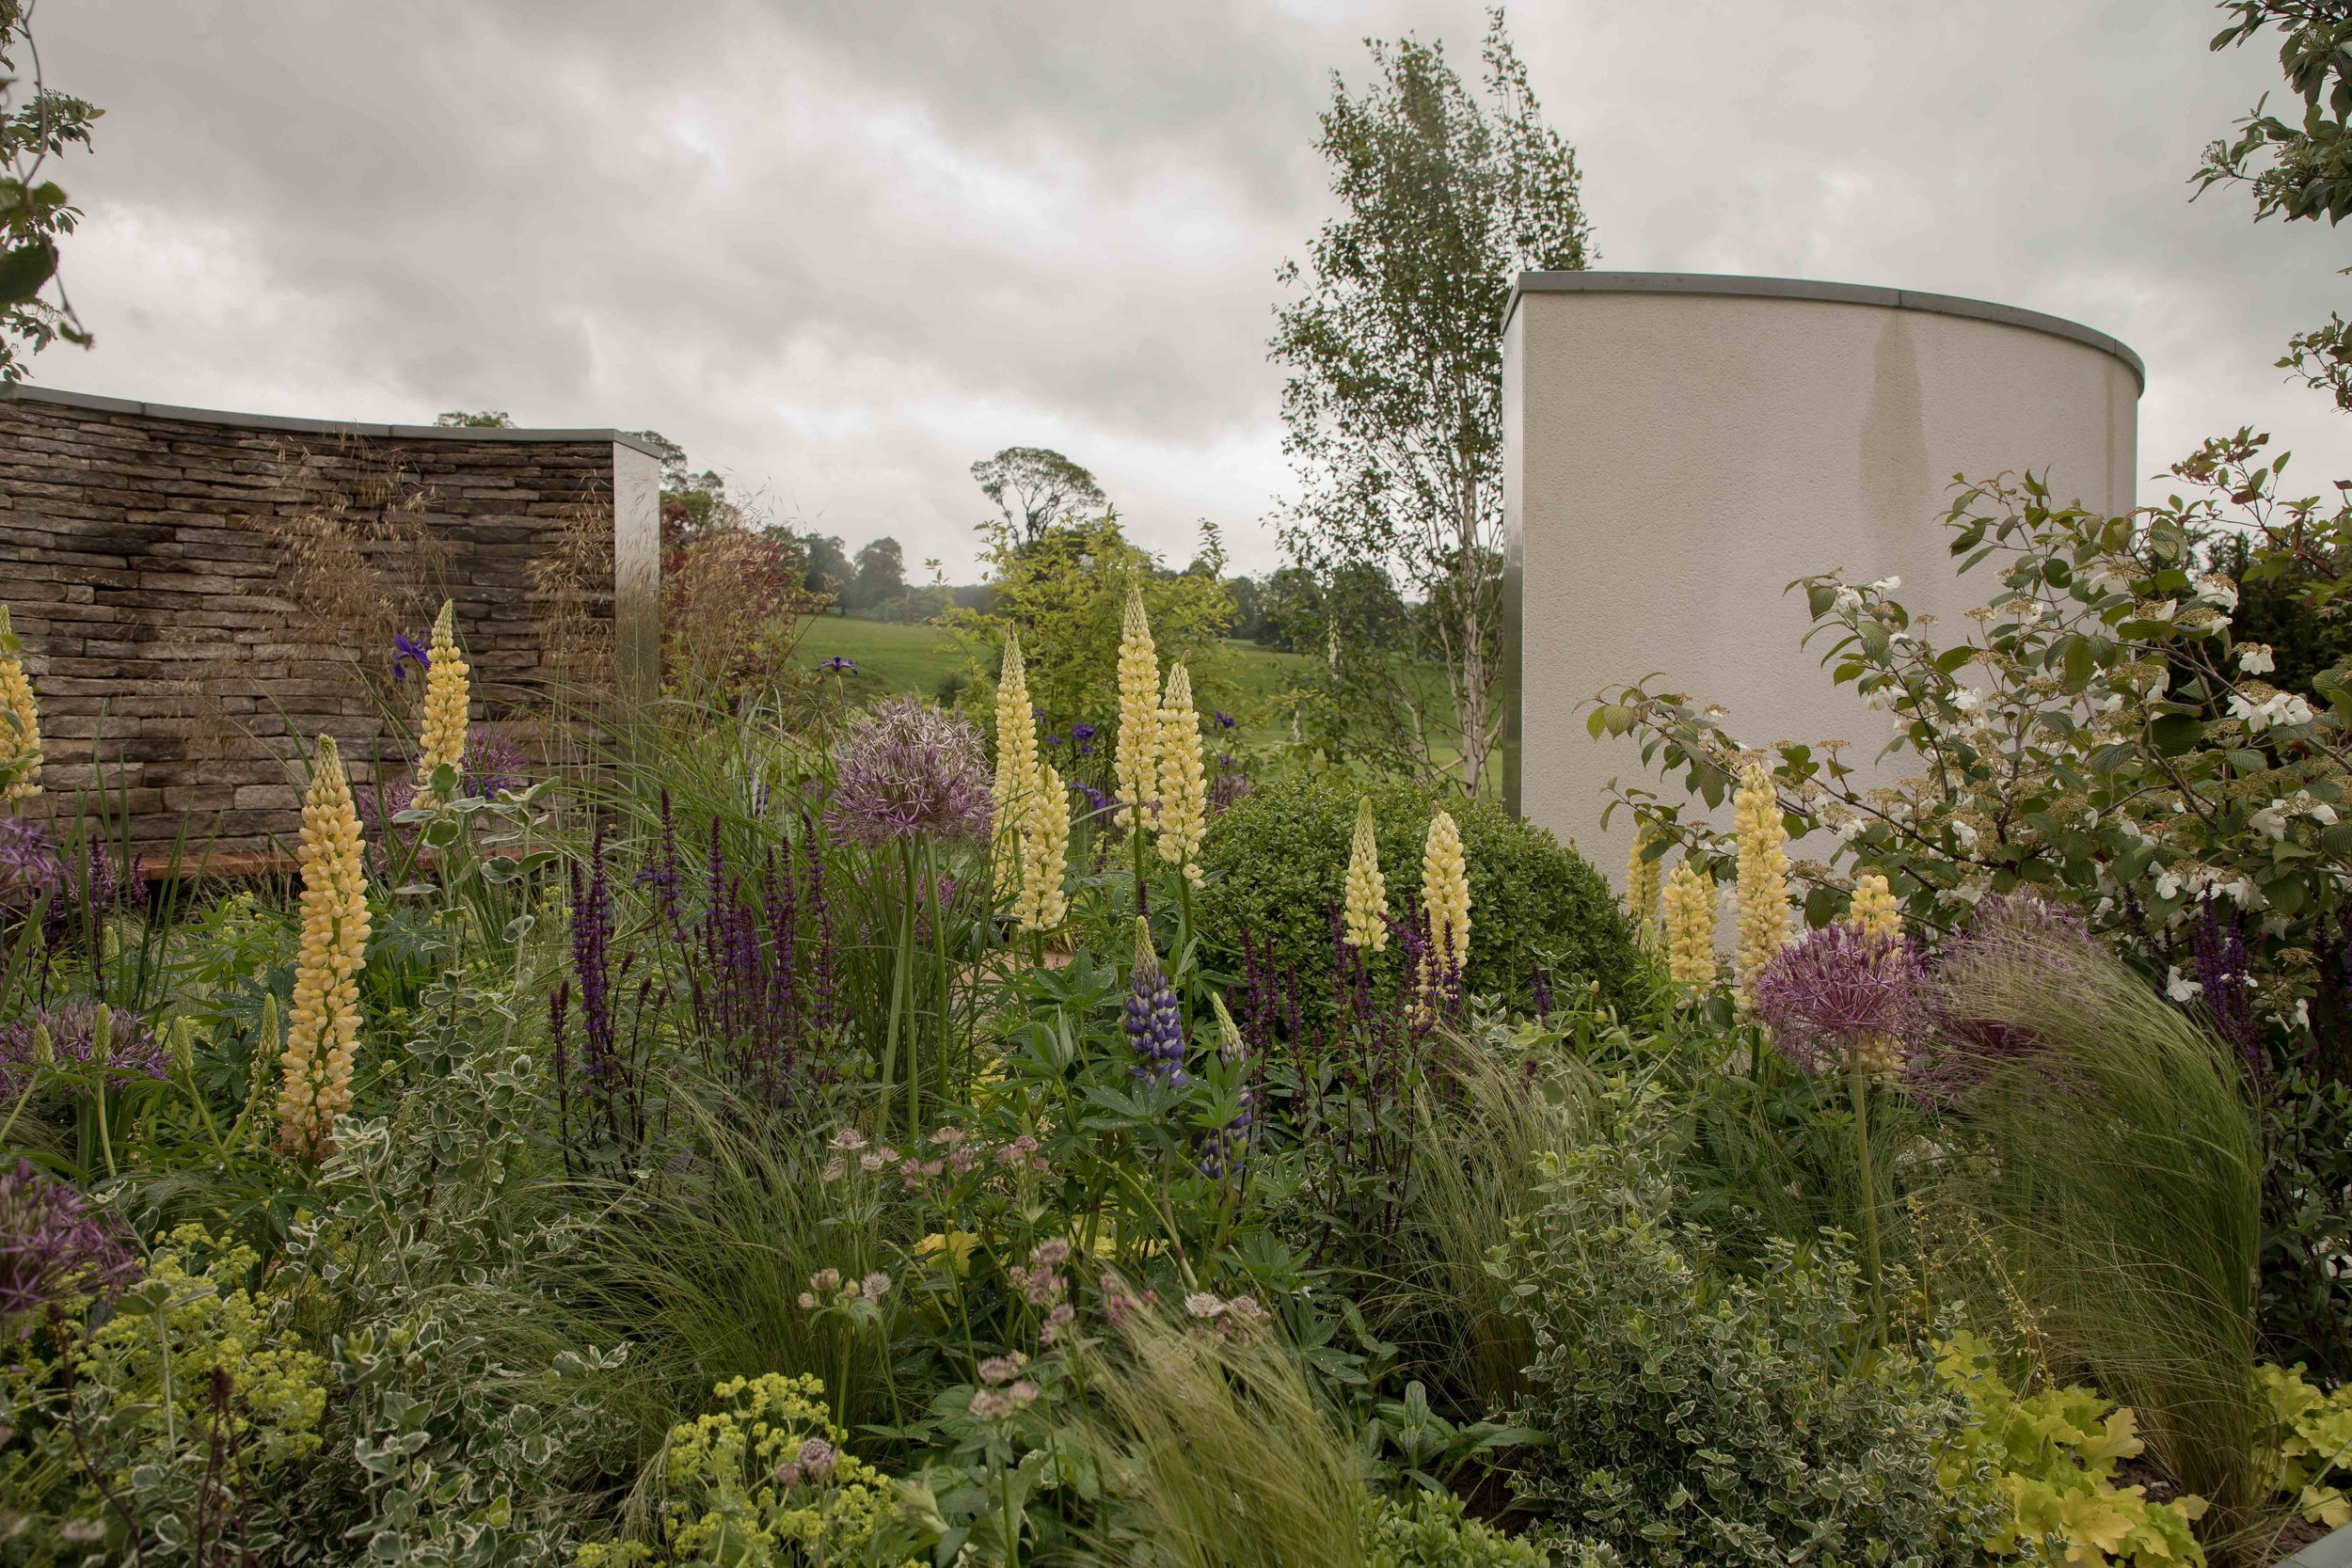 Even with the cloudy weather this garden and its planting looked spectacular. Cruse Bereavement Care - 'A Time for Everything' by designer Neil Sutcliffe